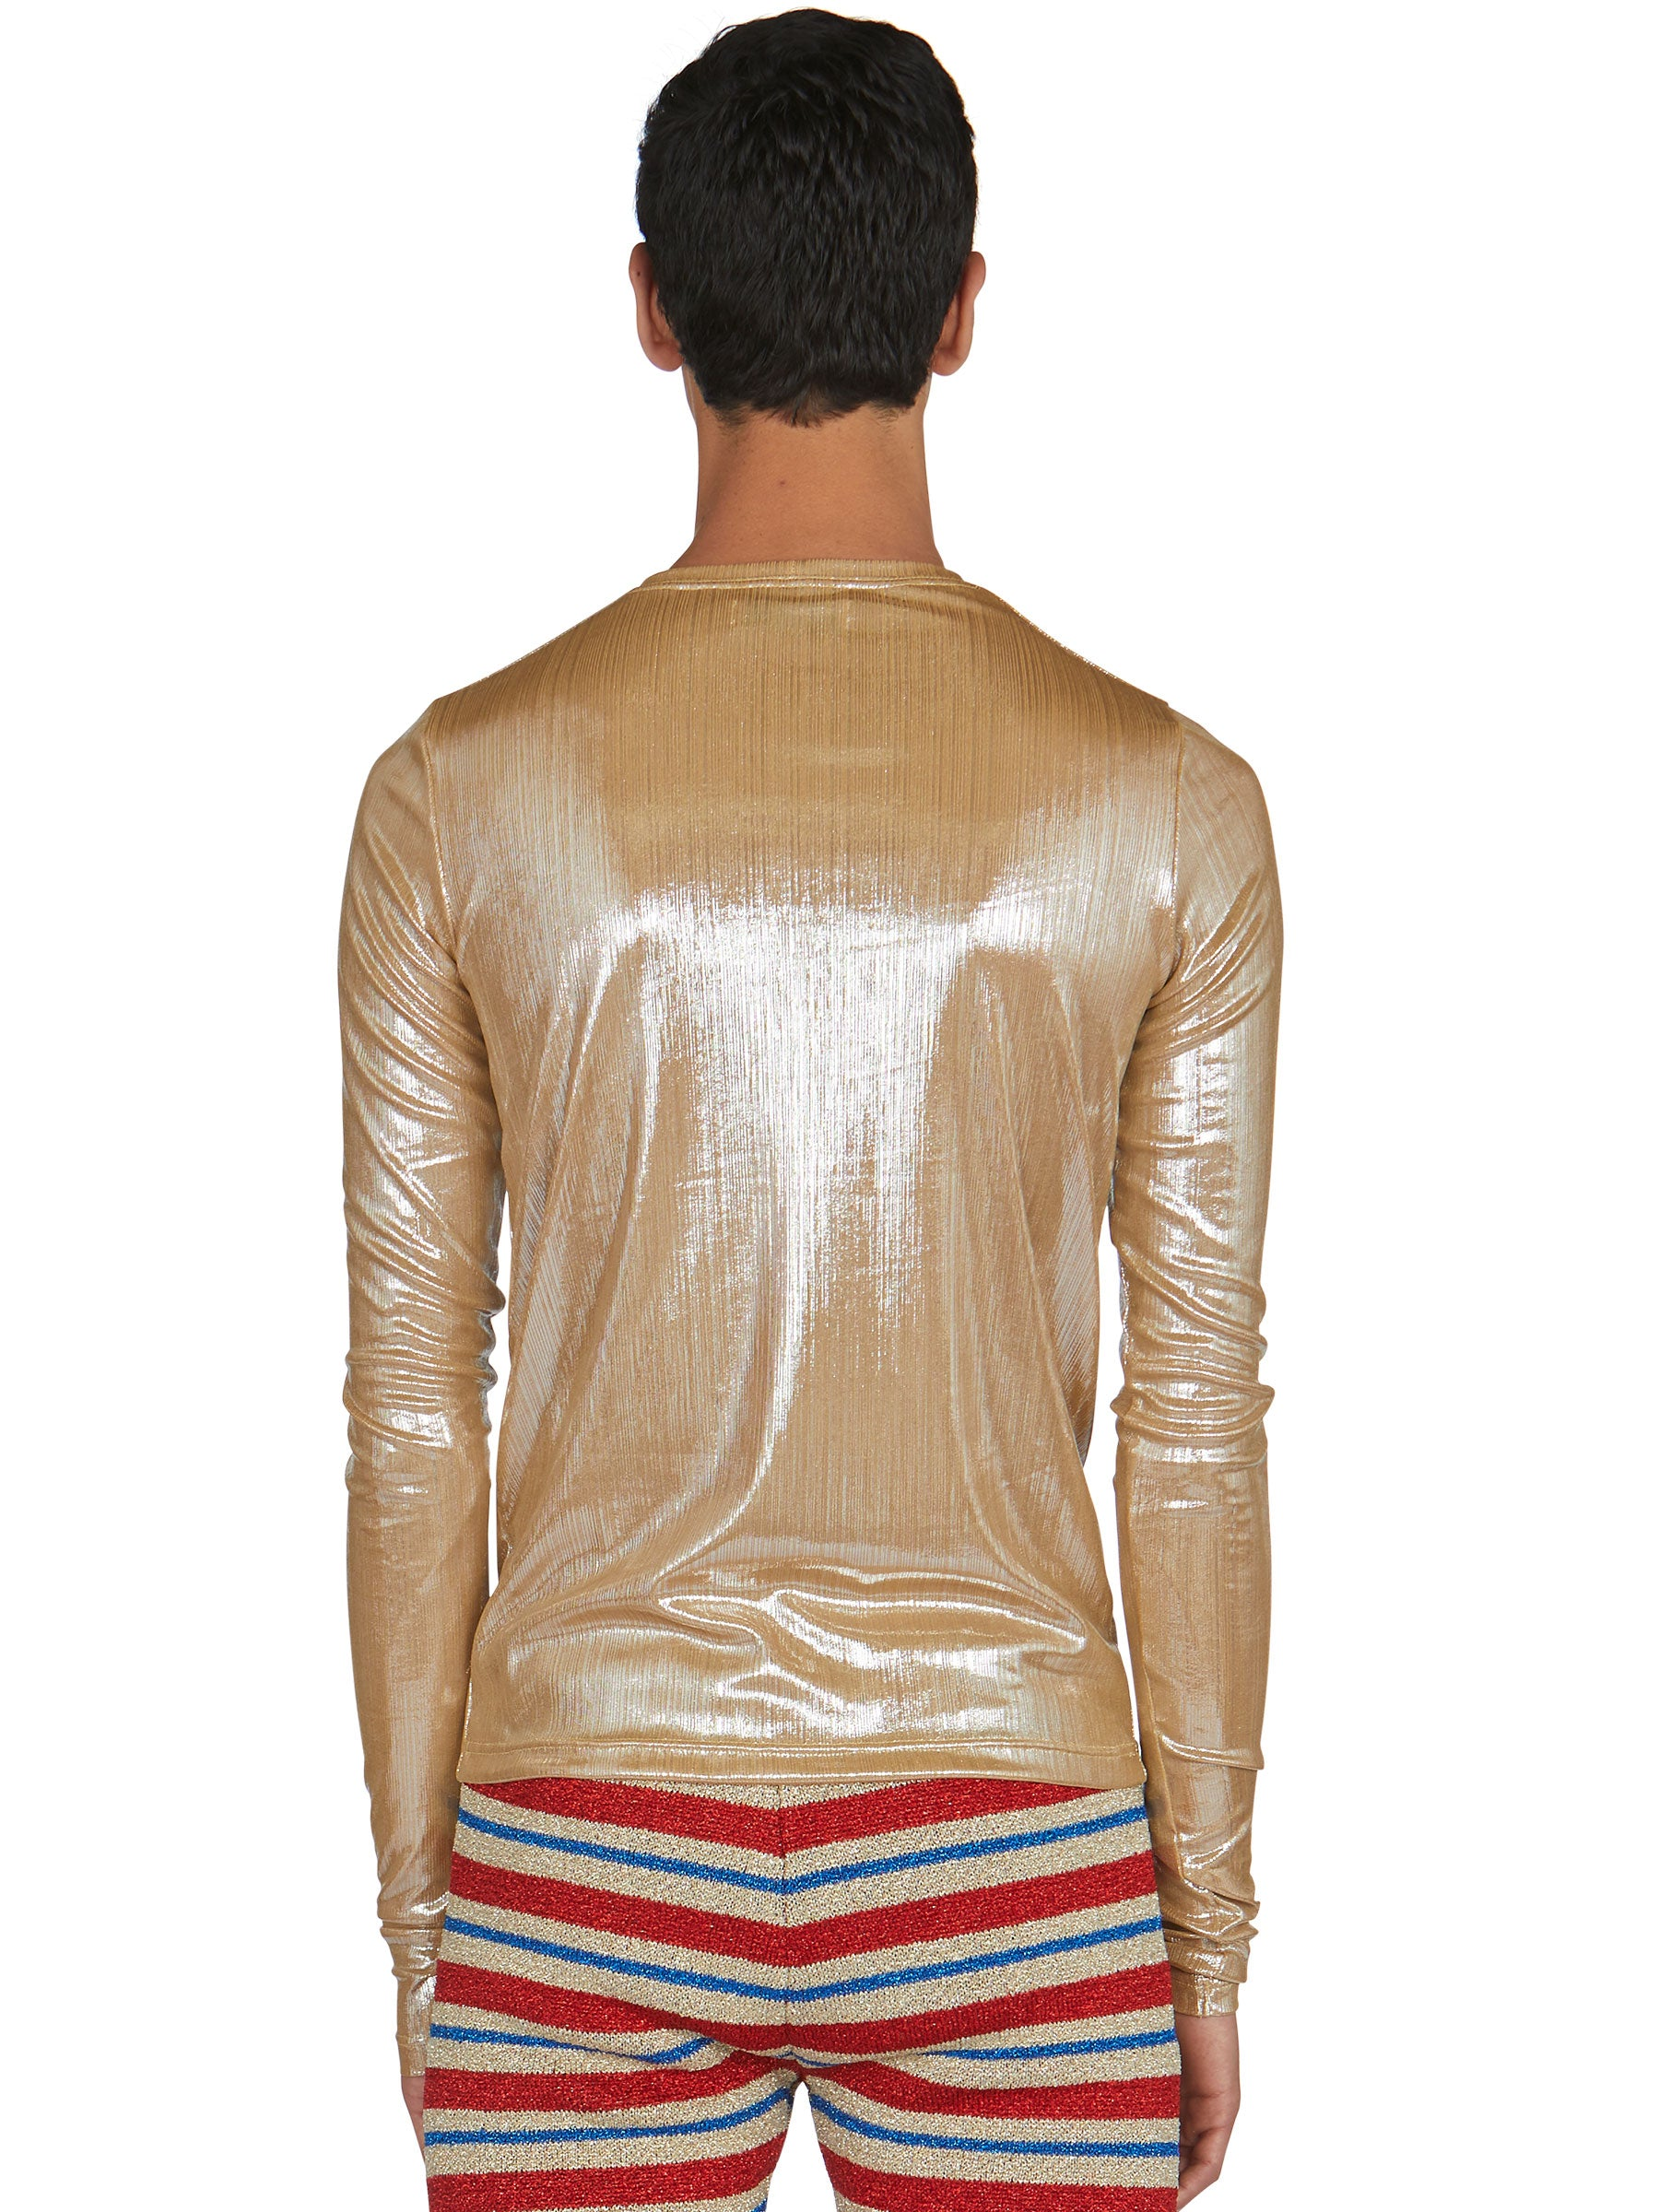 odd92 Shop Lazoschmidl Spring/Summer 2019 Menswear Blanche Foil Pleat Top - 3